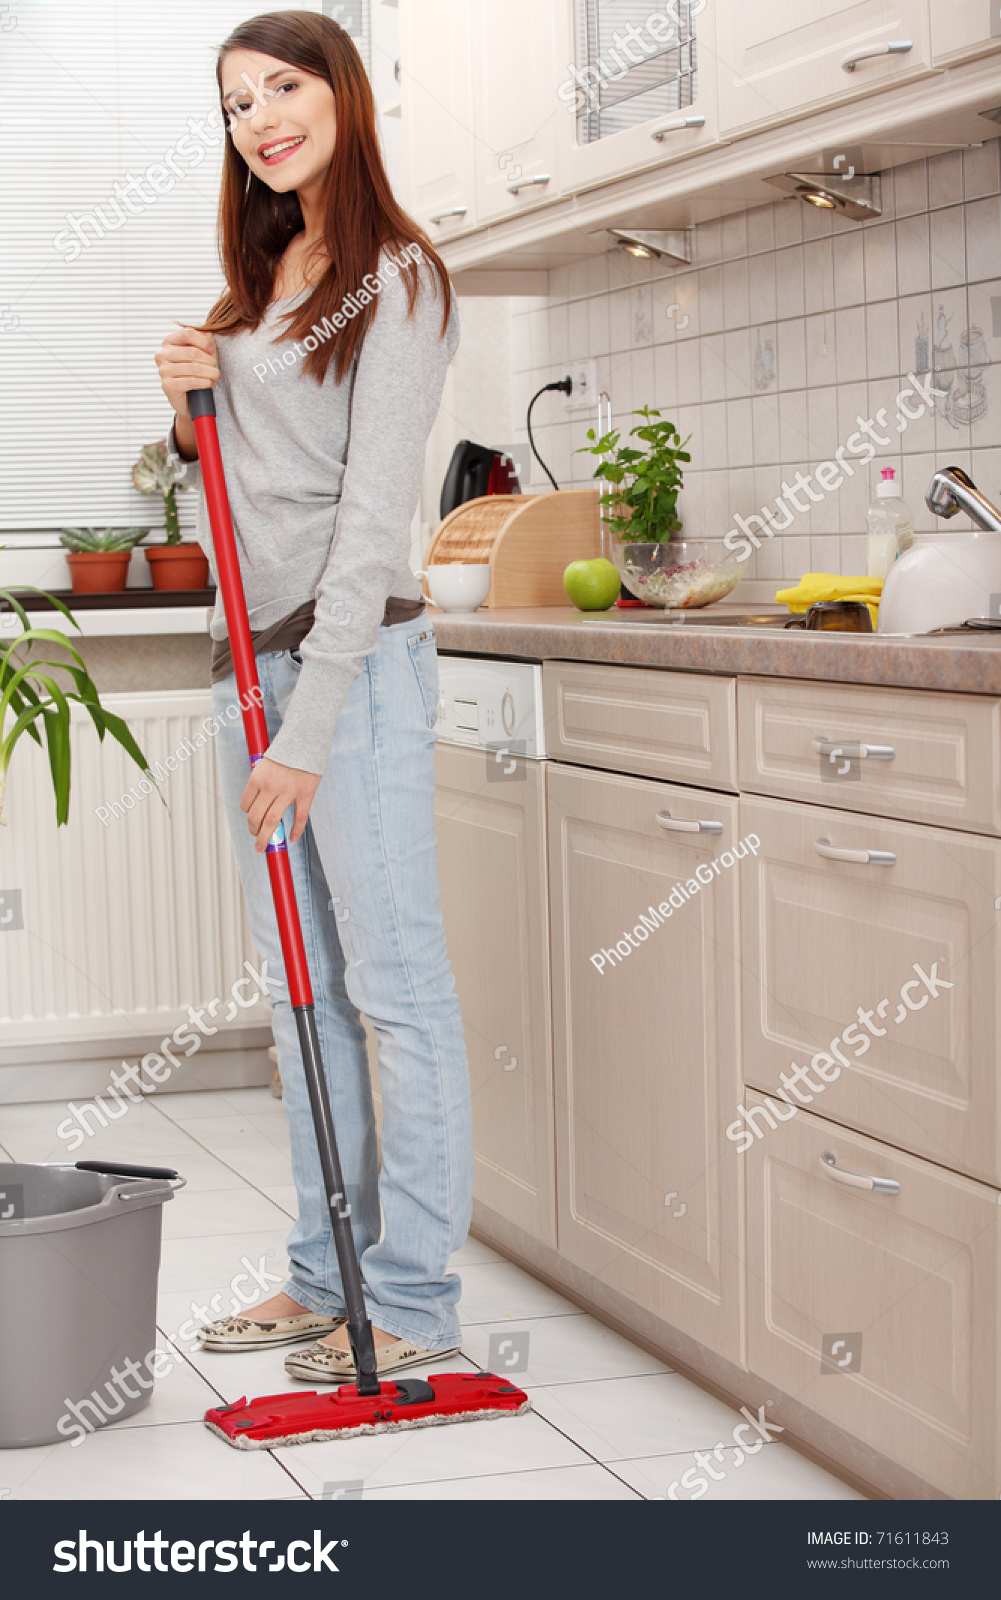 Kitchen Floor Cleaners Woman Holding A Mop And Cleaning Kitchen Floor Stock Photo